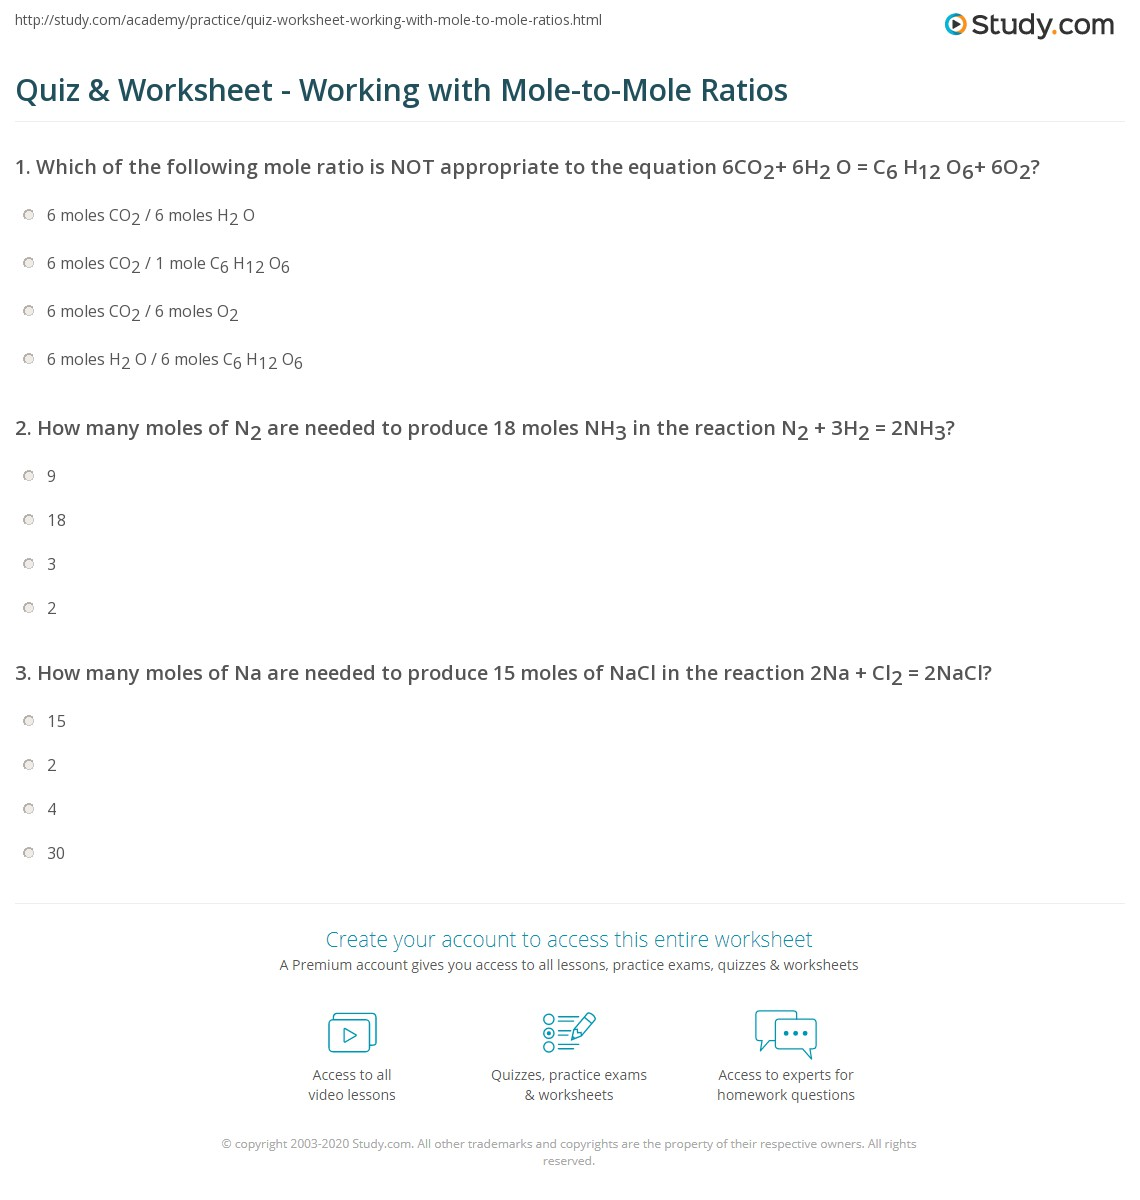 Quiz Worksheet Working With Mole To Mole Ratios